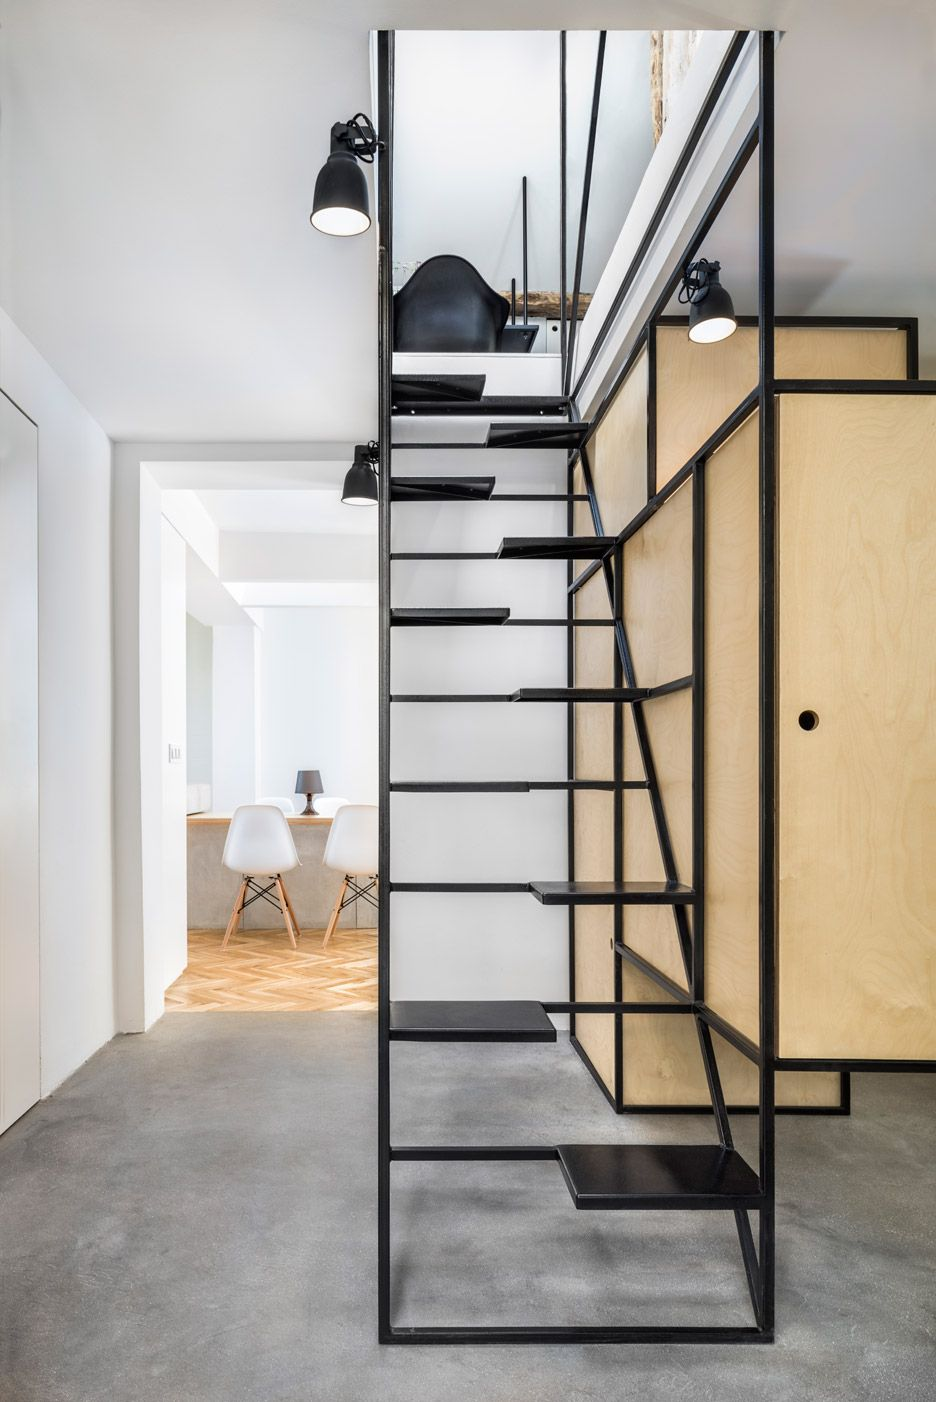 DontDIY adds black wireframe staircase in house in Bulgaria